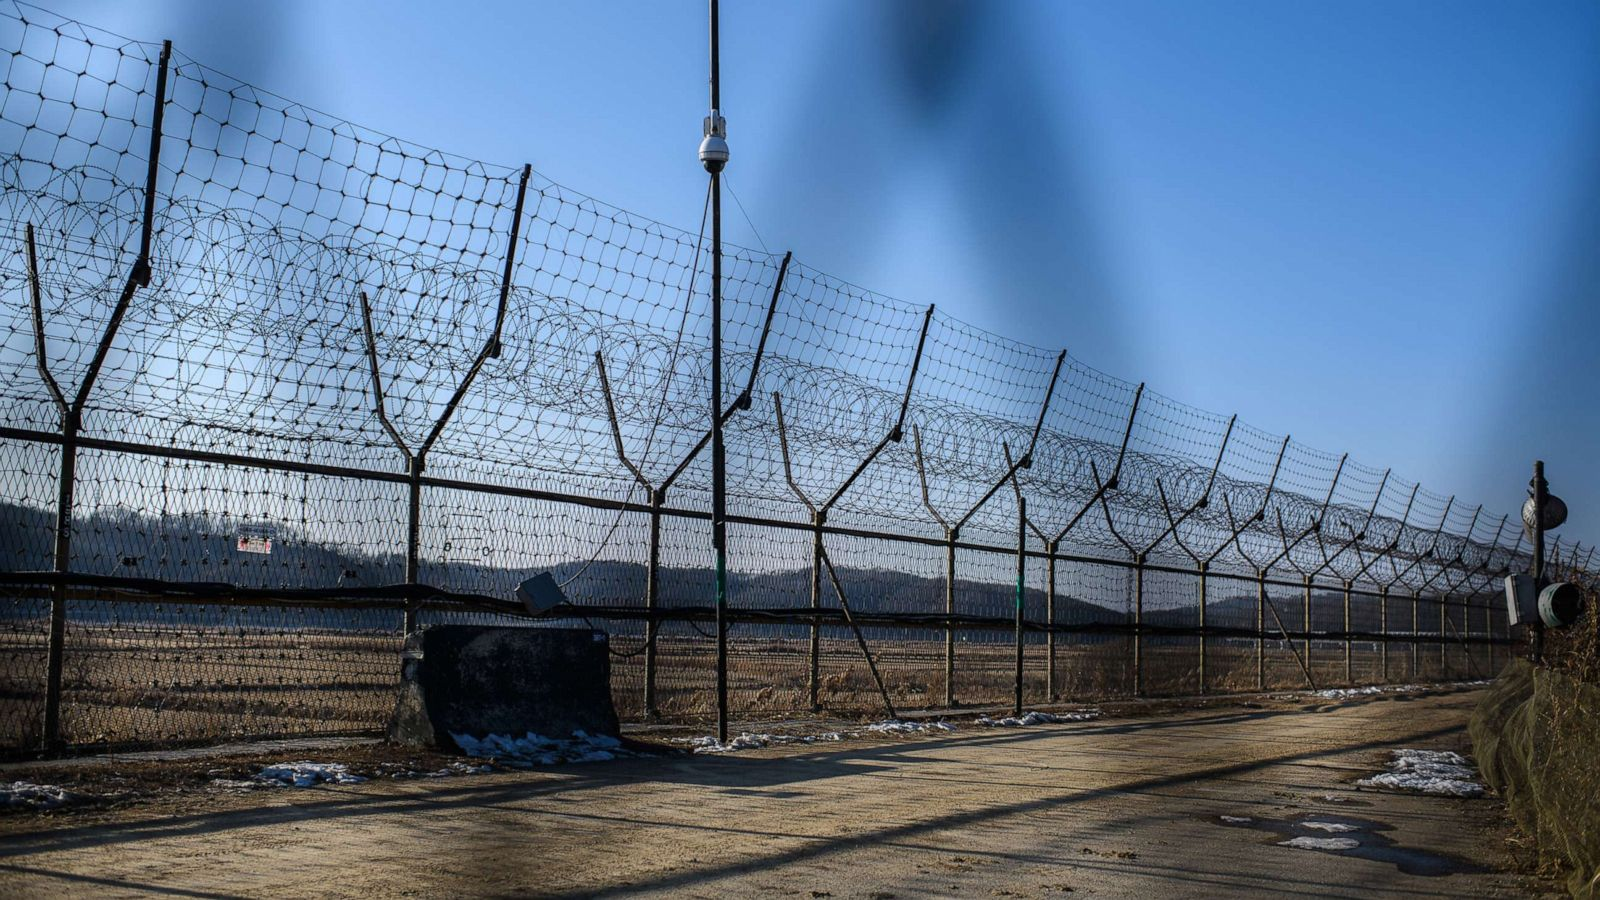 3 North Korean Defectors Talk About What It Was Like Crossing The